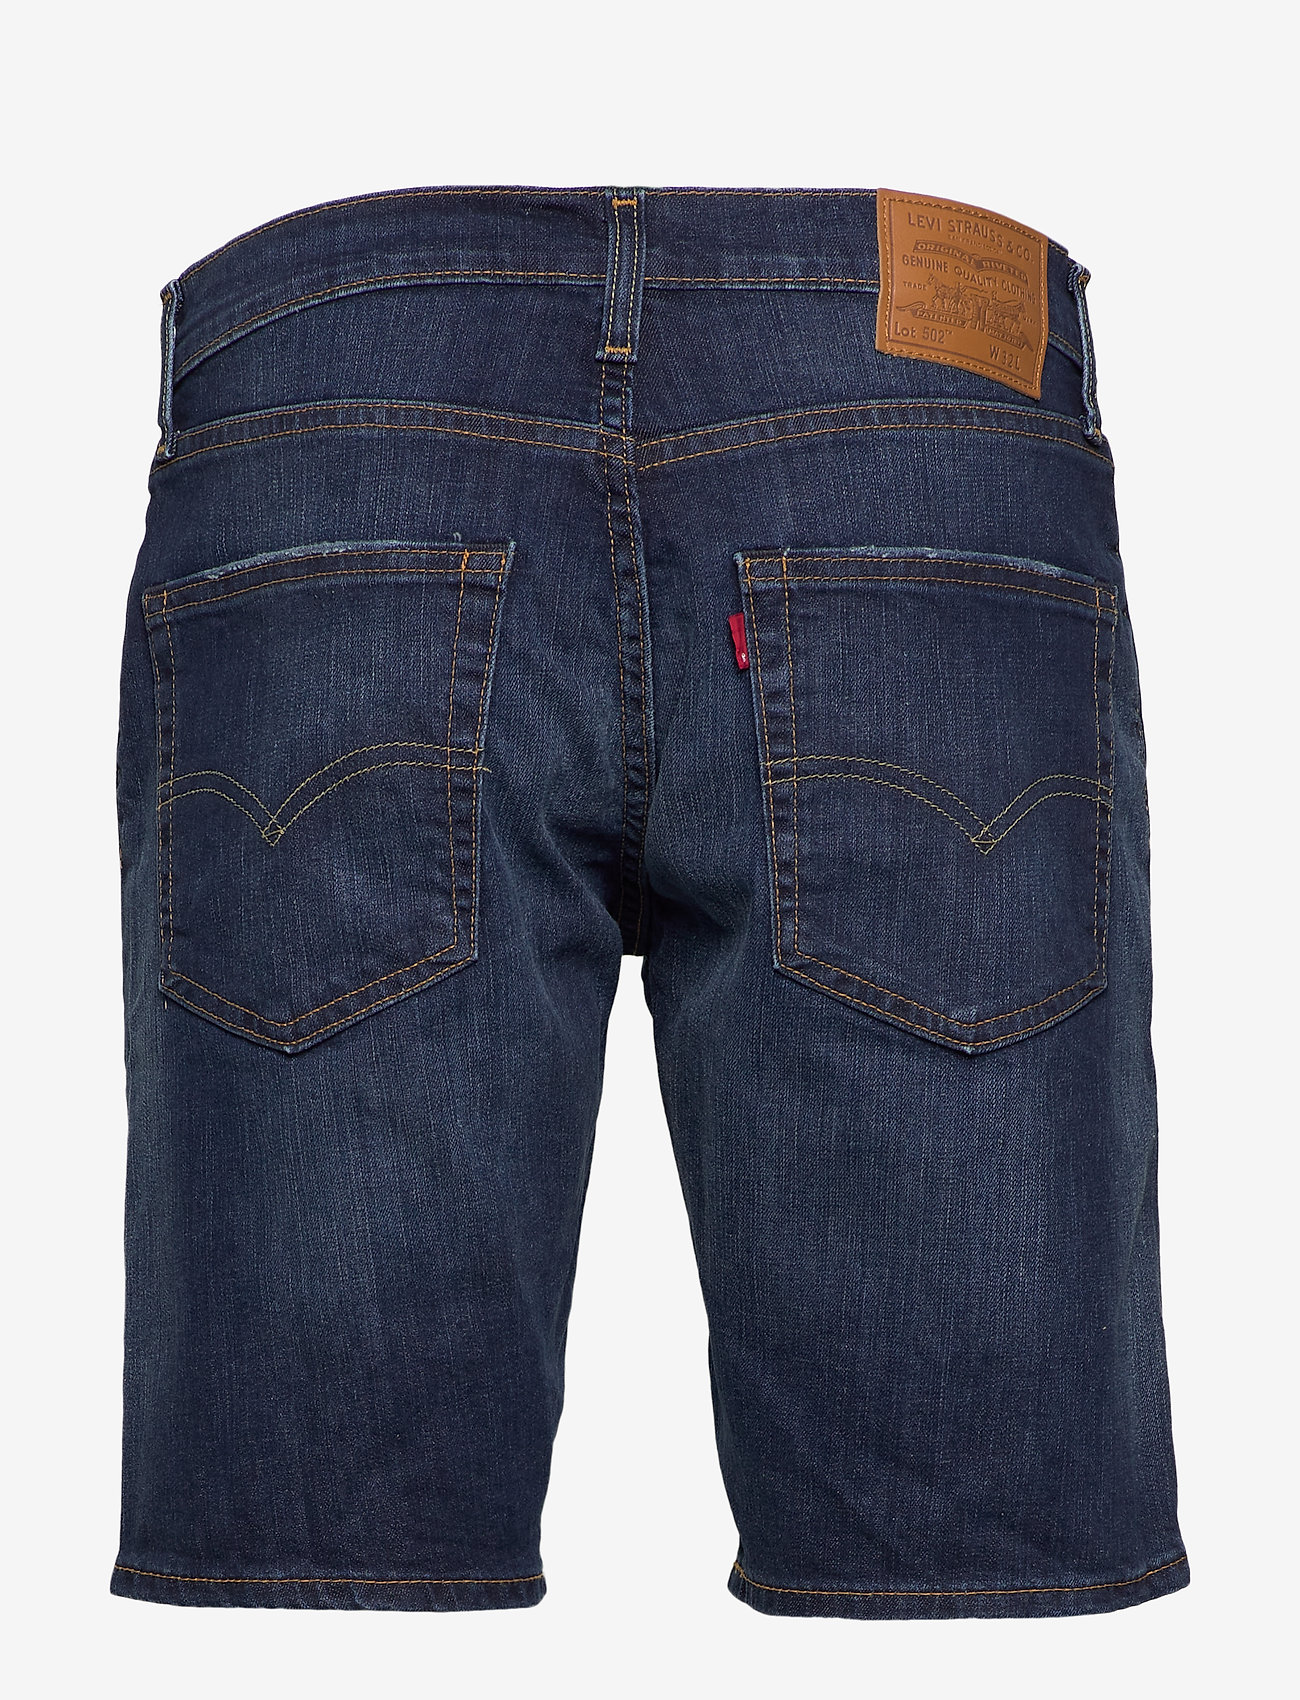 LEVI´S Men - 502 TAPER SHORTS 10 RAINSHOWER - denim shorts - dark indigo - worn in - 1